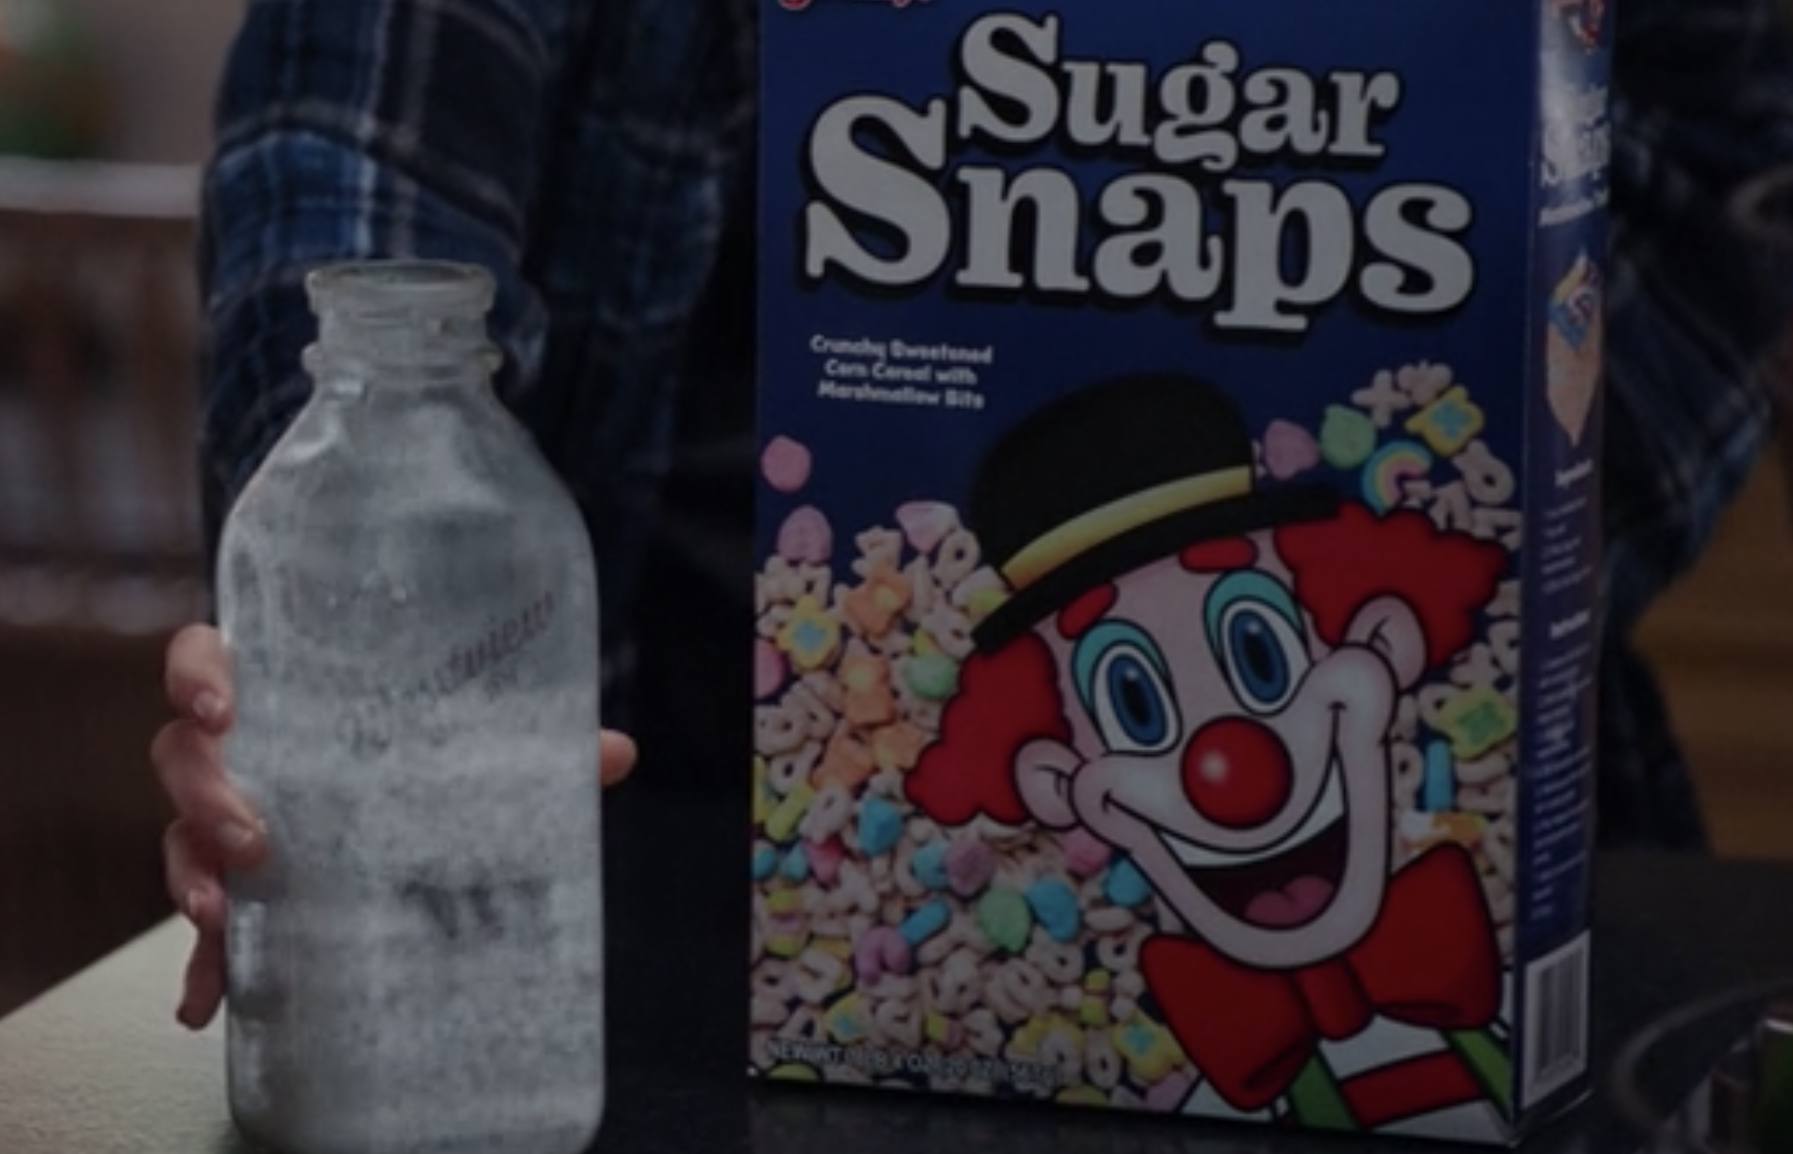 A close-up of the cereal box featuring a clown